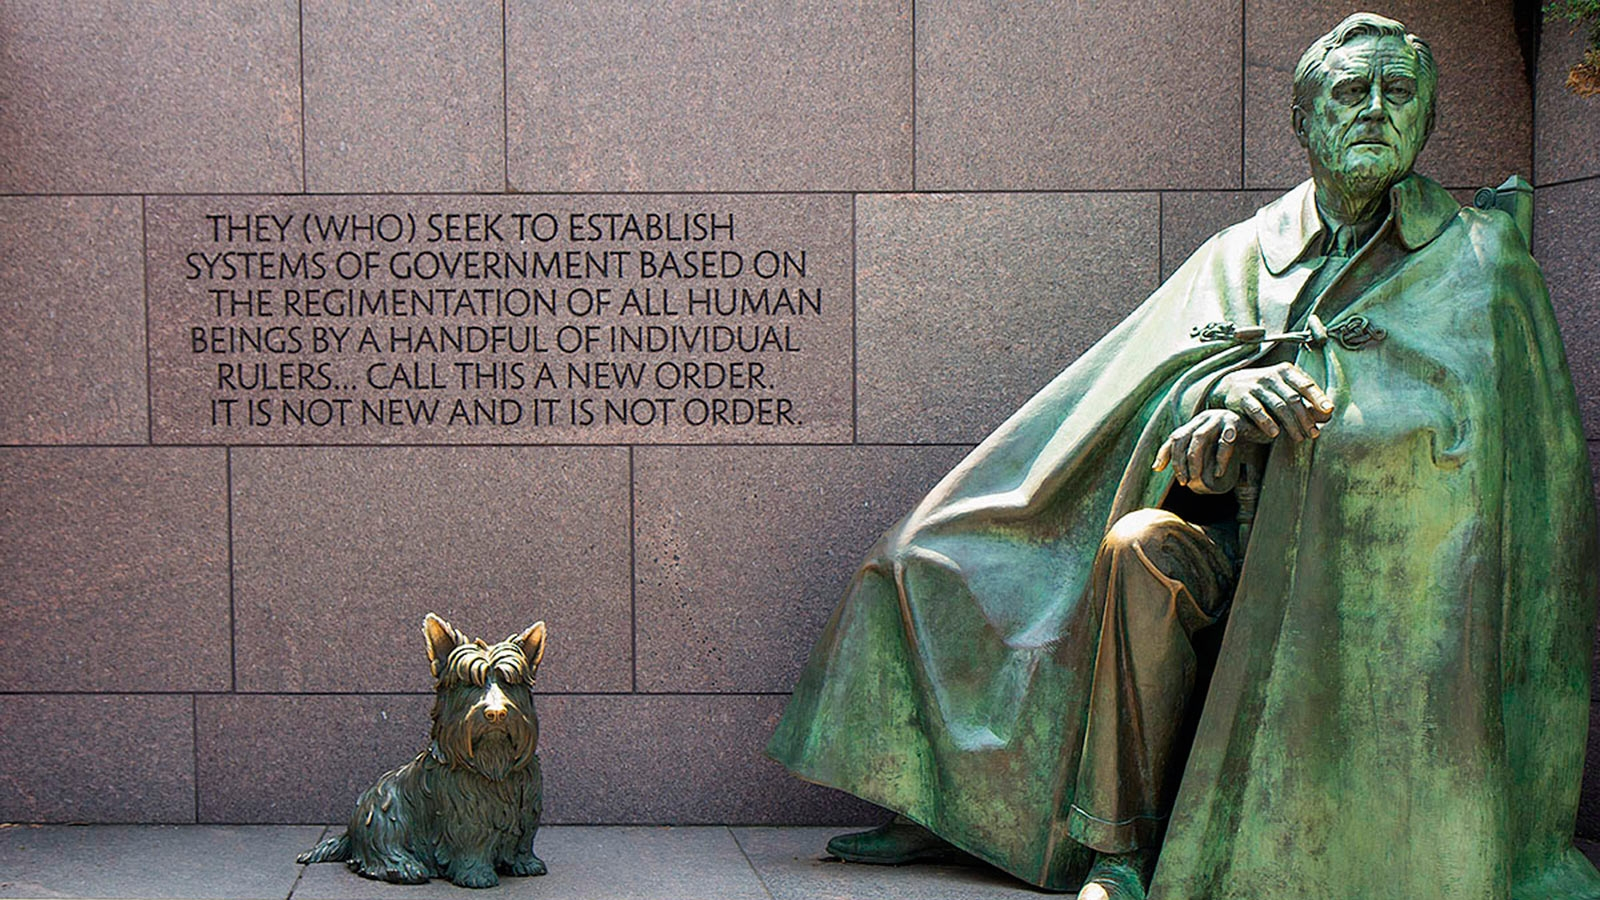 fdr-memorial-statue-credit-stefan-fussan_flickr-user-derfussi.jpg